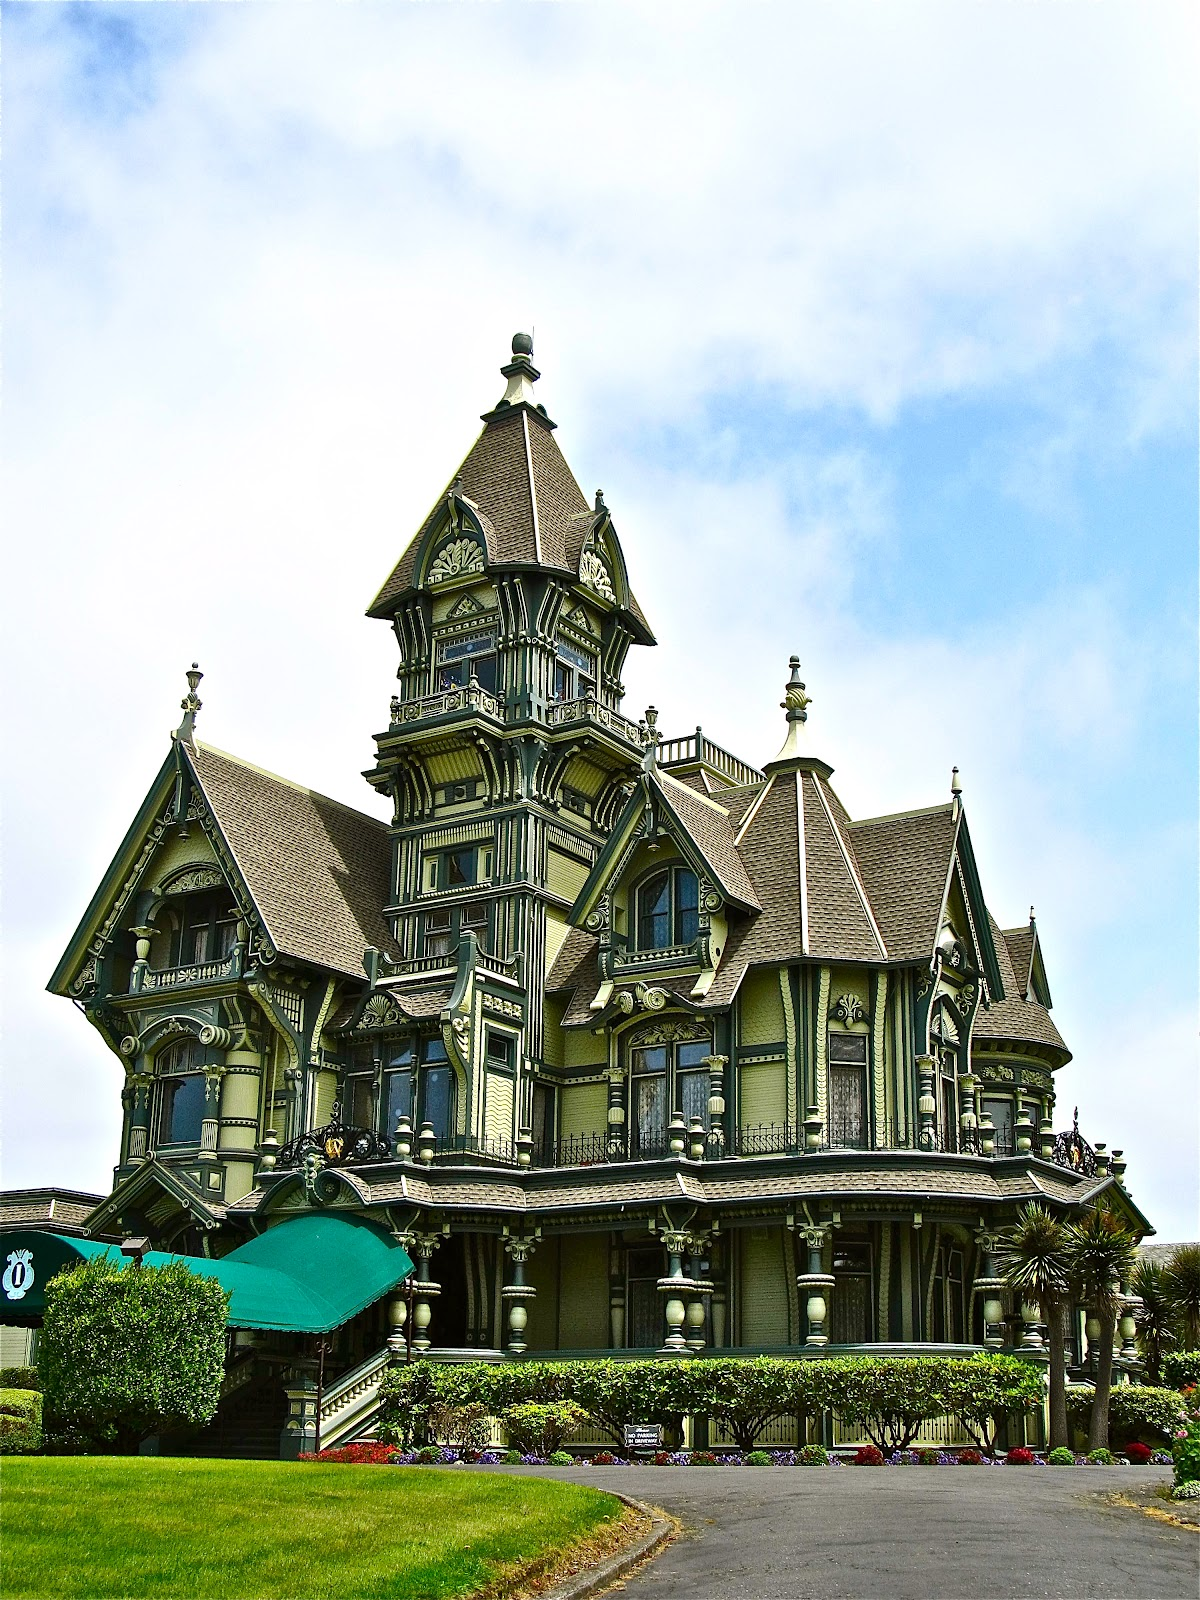 Quot Calgary Stampede Trip Quot Quot The Carson Mansion In Eureka Ca Quot